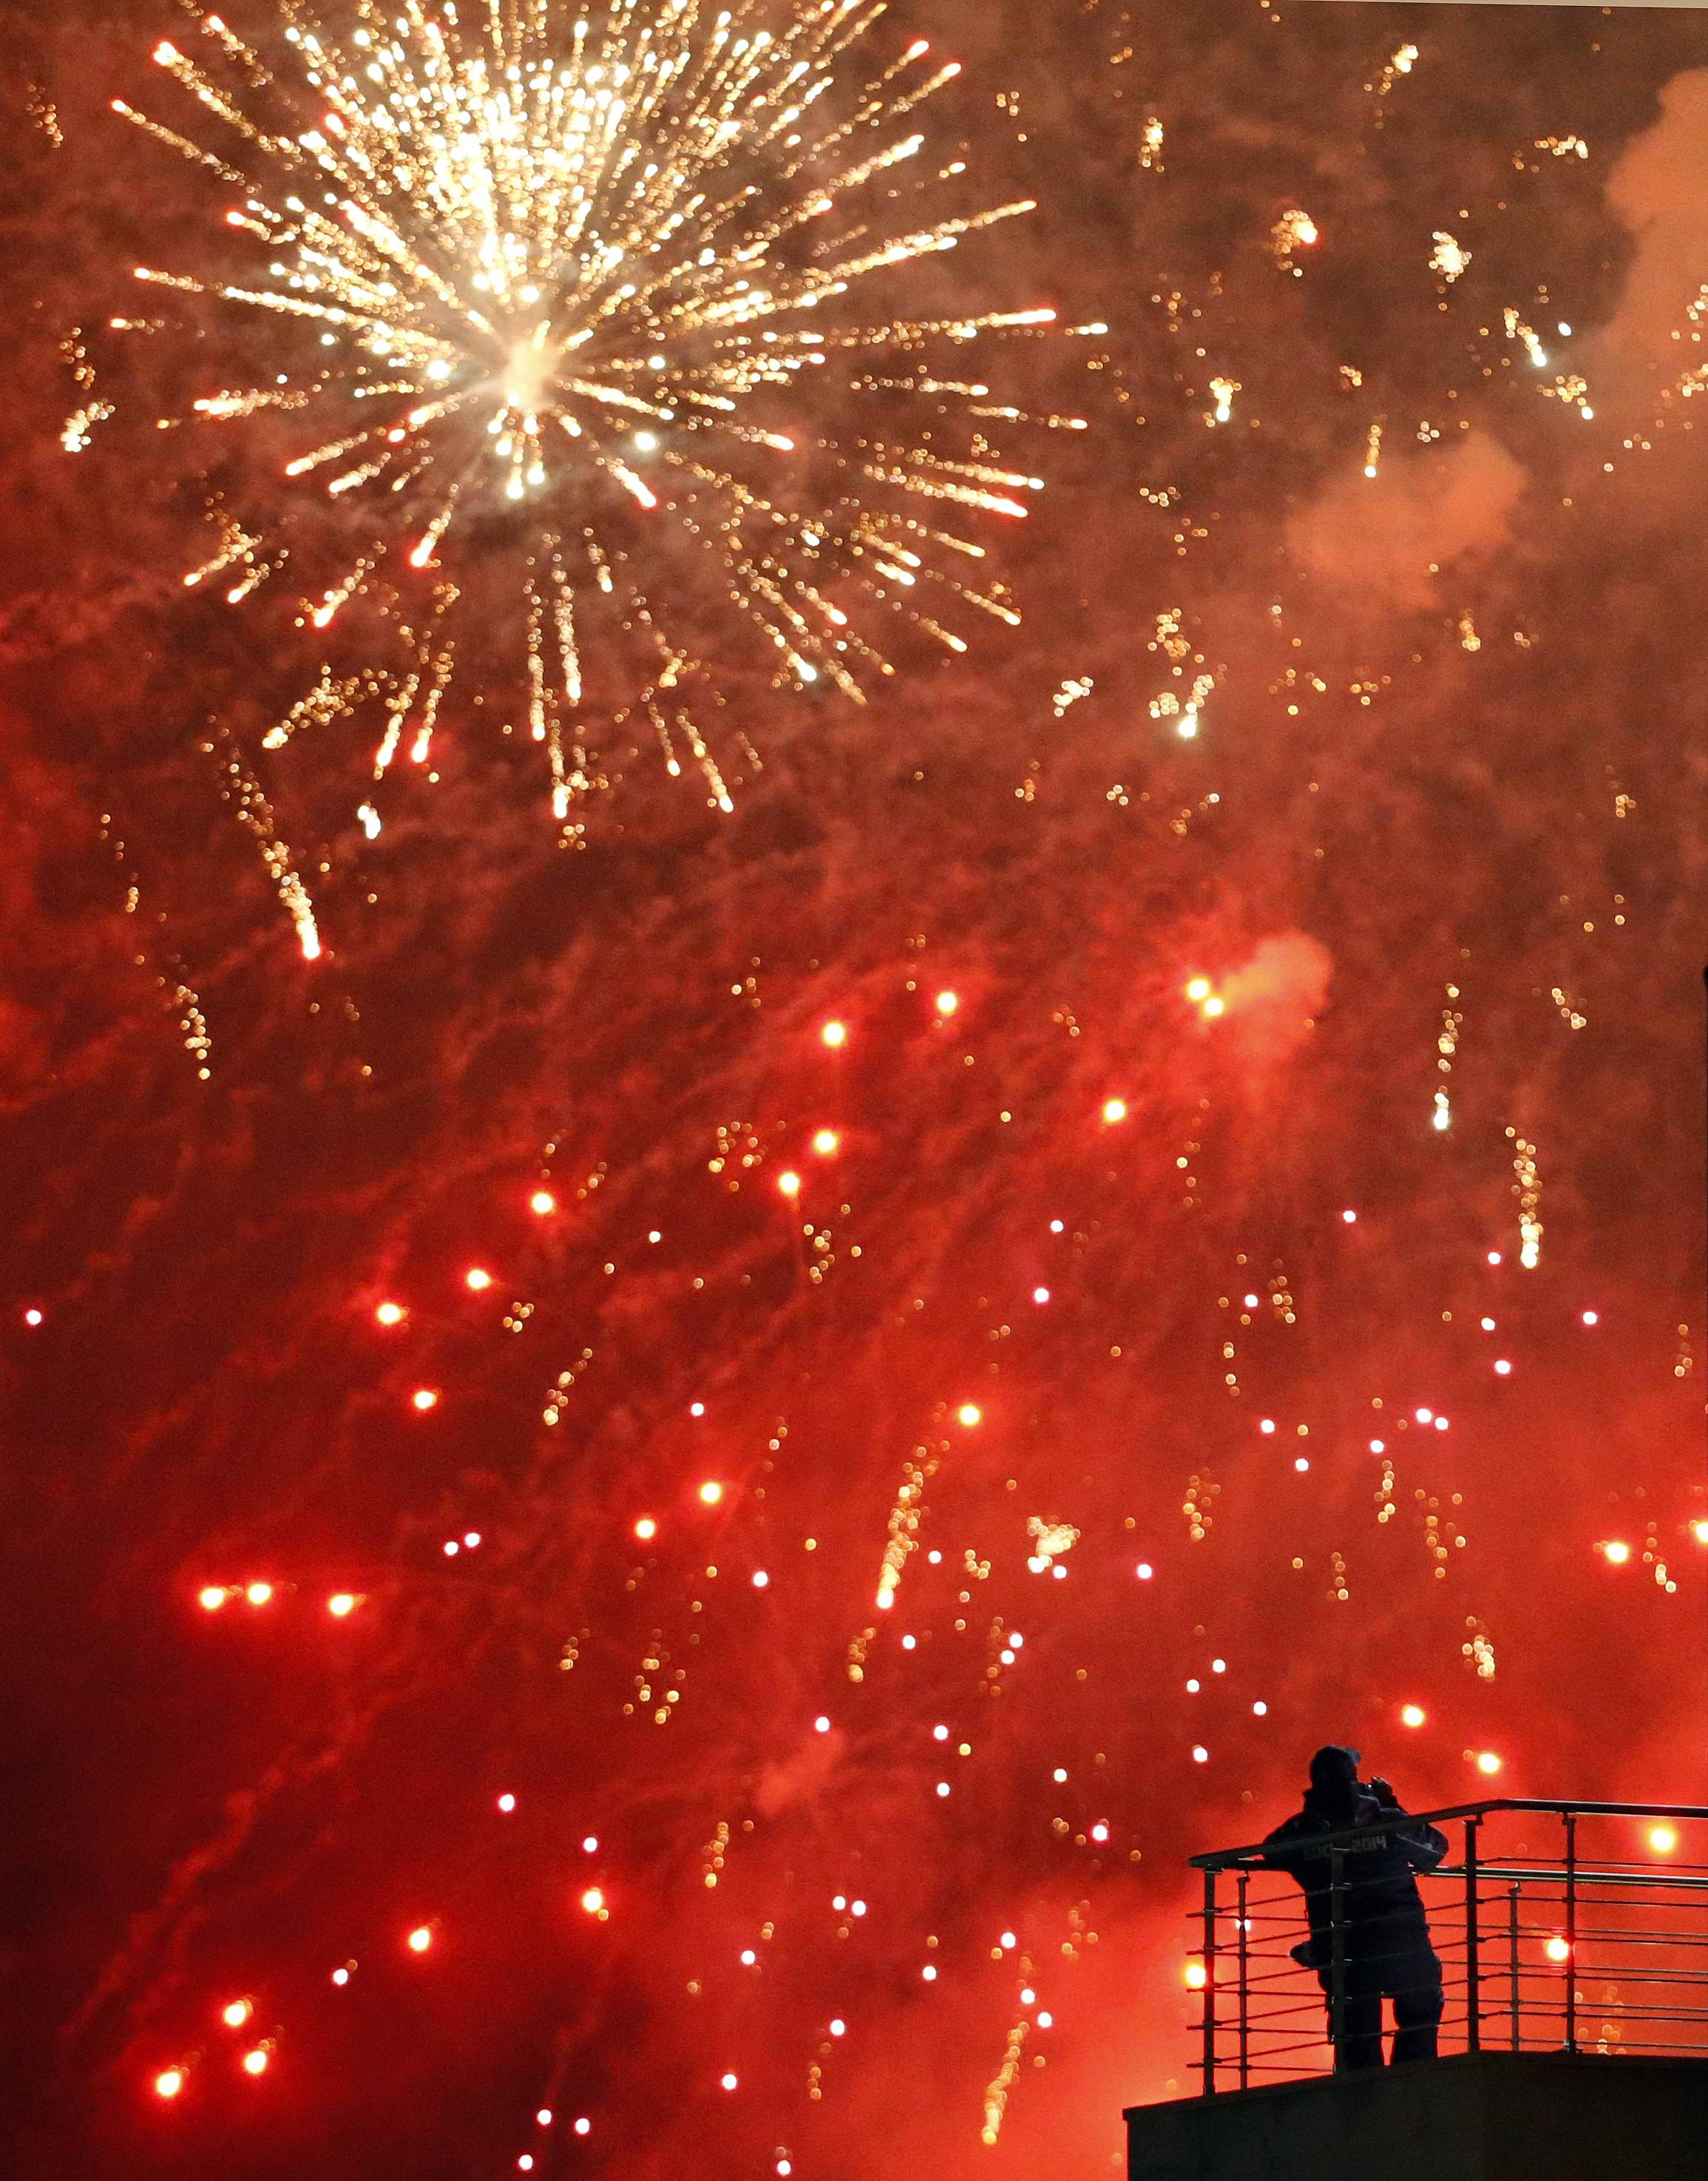 A man watches fireworks from a balcony during the closing ceremonies at the 2014 Winter Olympics, Sunday, Feb. 23, 2014, in Sochi, Russia.